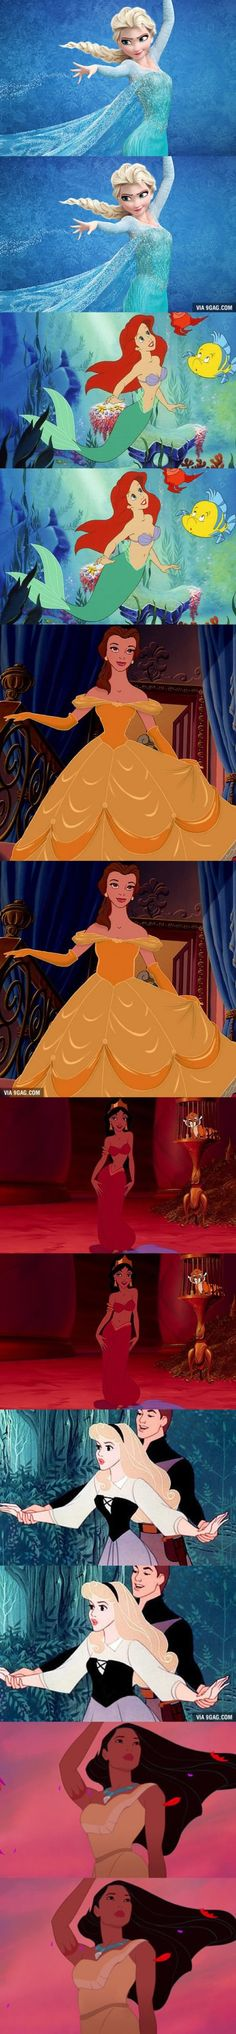 If Disney Princesses Had Realistic Waistlines. The originals look ridiculous now.